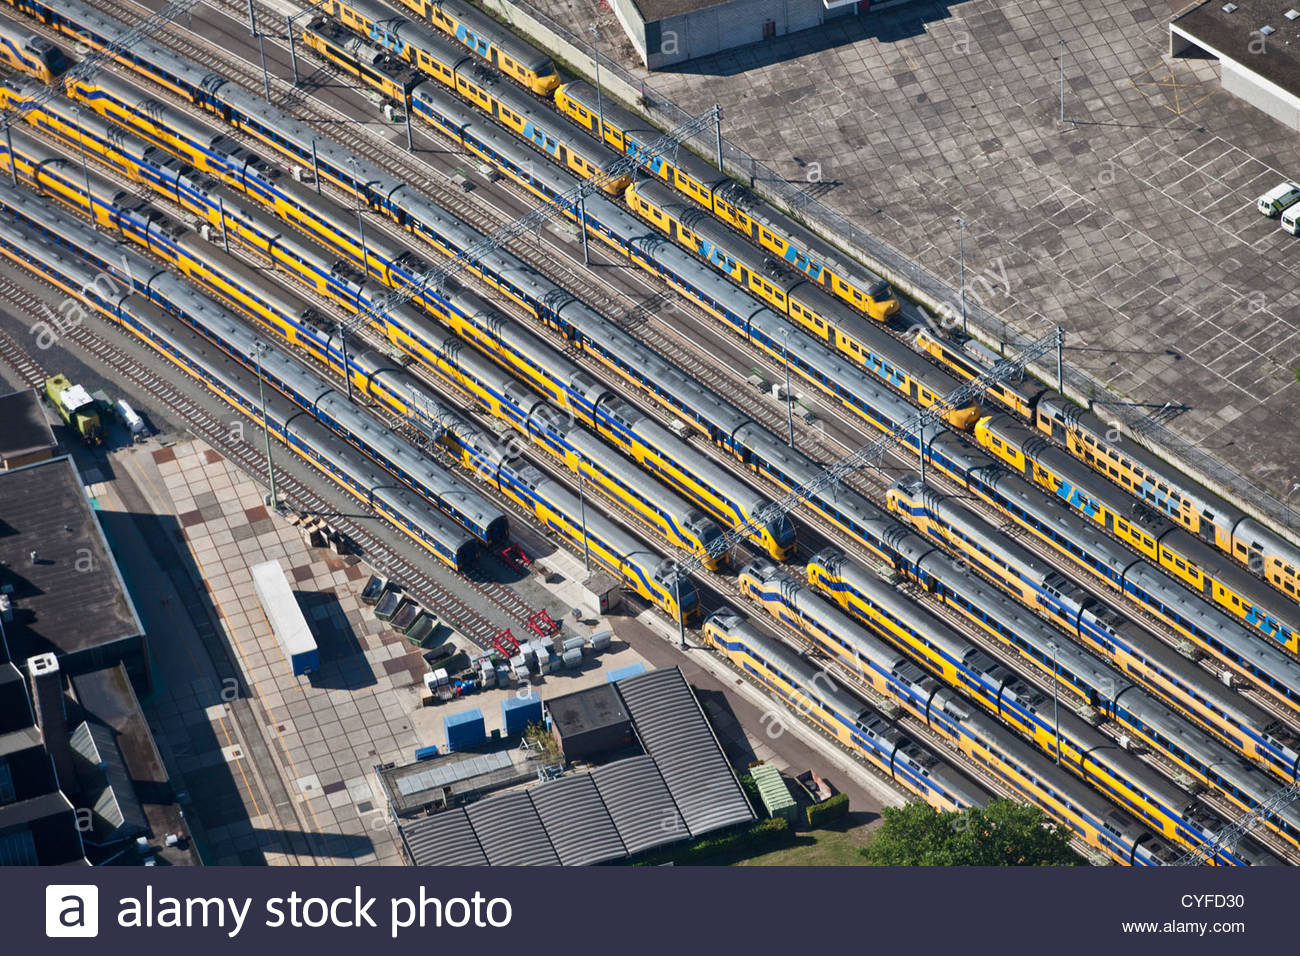 The Netherlands, Maastricht. Trains at station. Aerial. - Stock Image